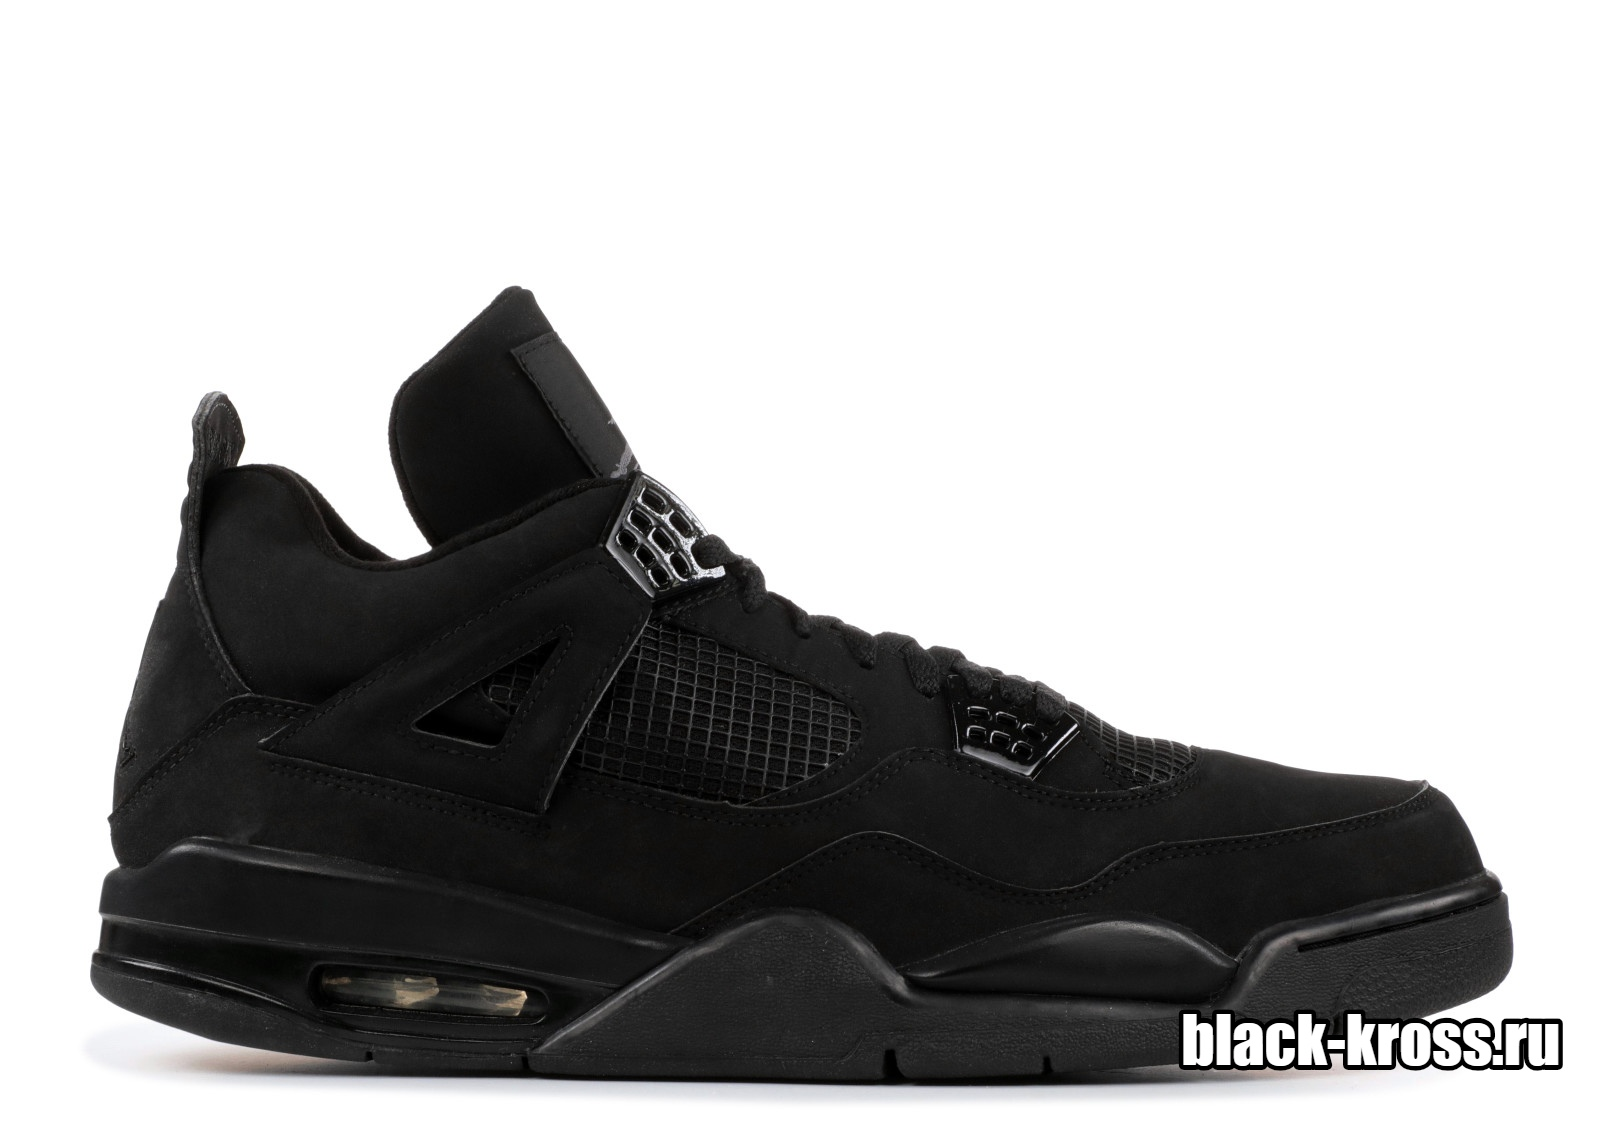 NIKE AIR JORDAN IV BLACK (41-45)